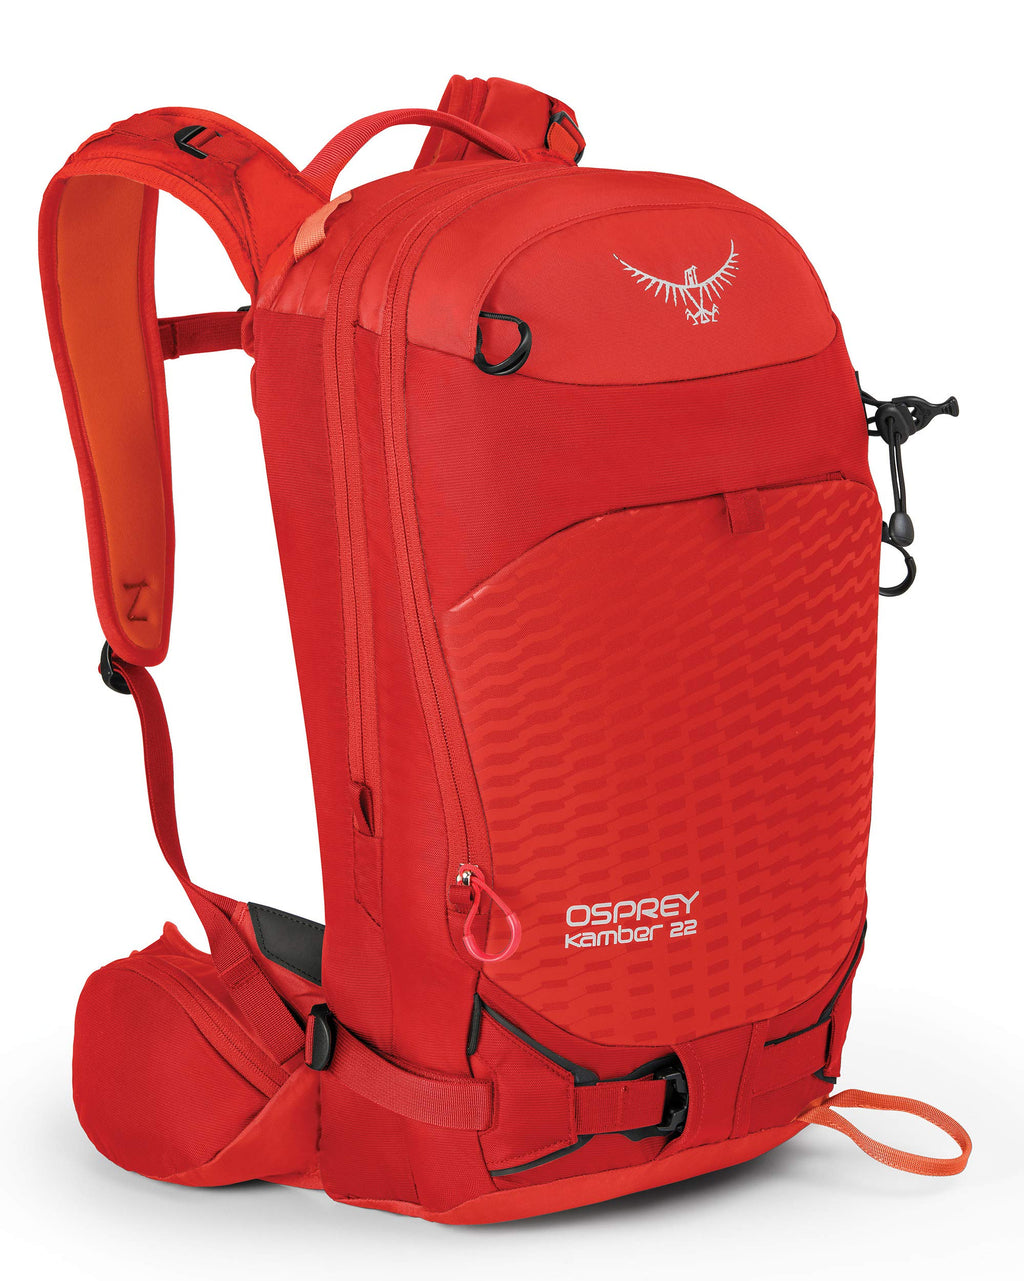 Osprey Packs Kamber 22 Men's Ski Pack, Ripcord Red, Small/Medium